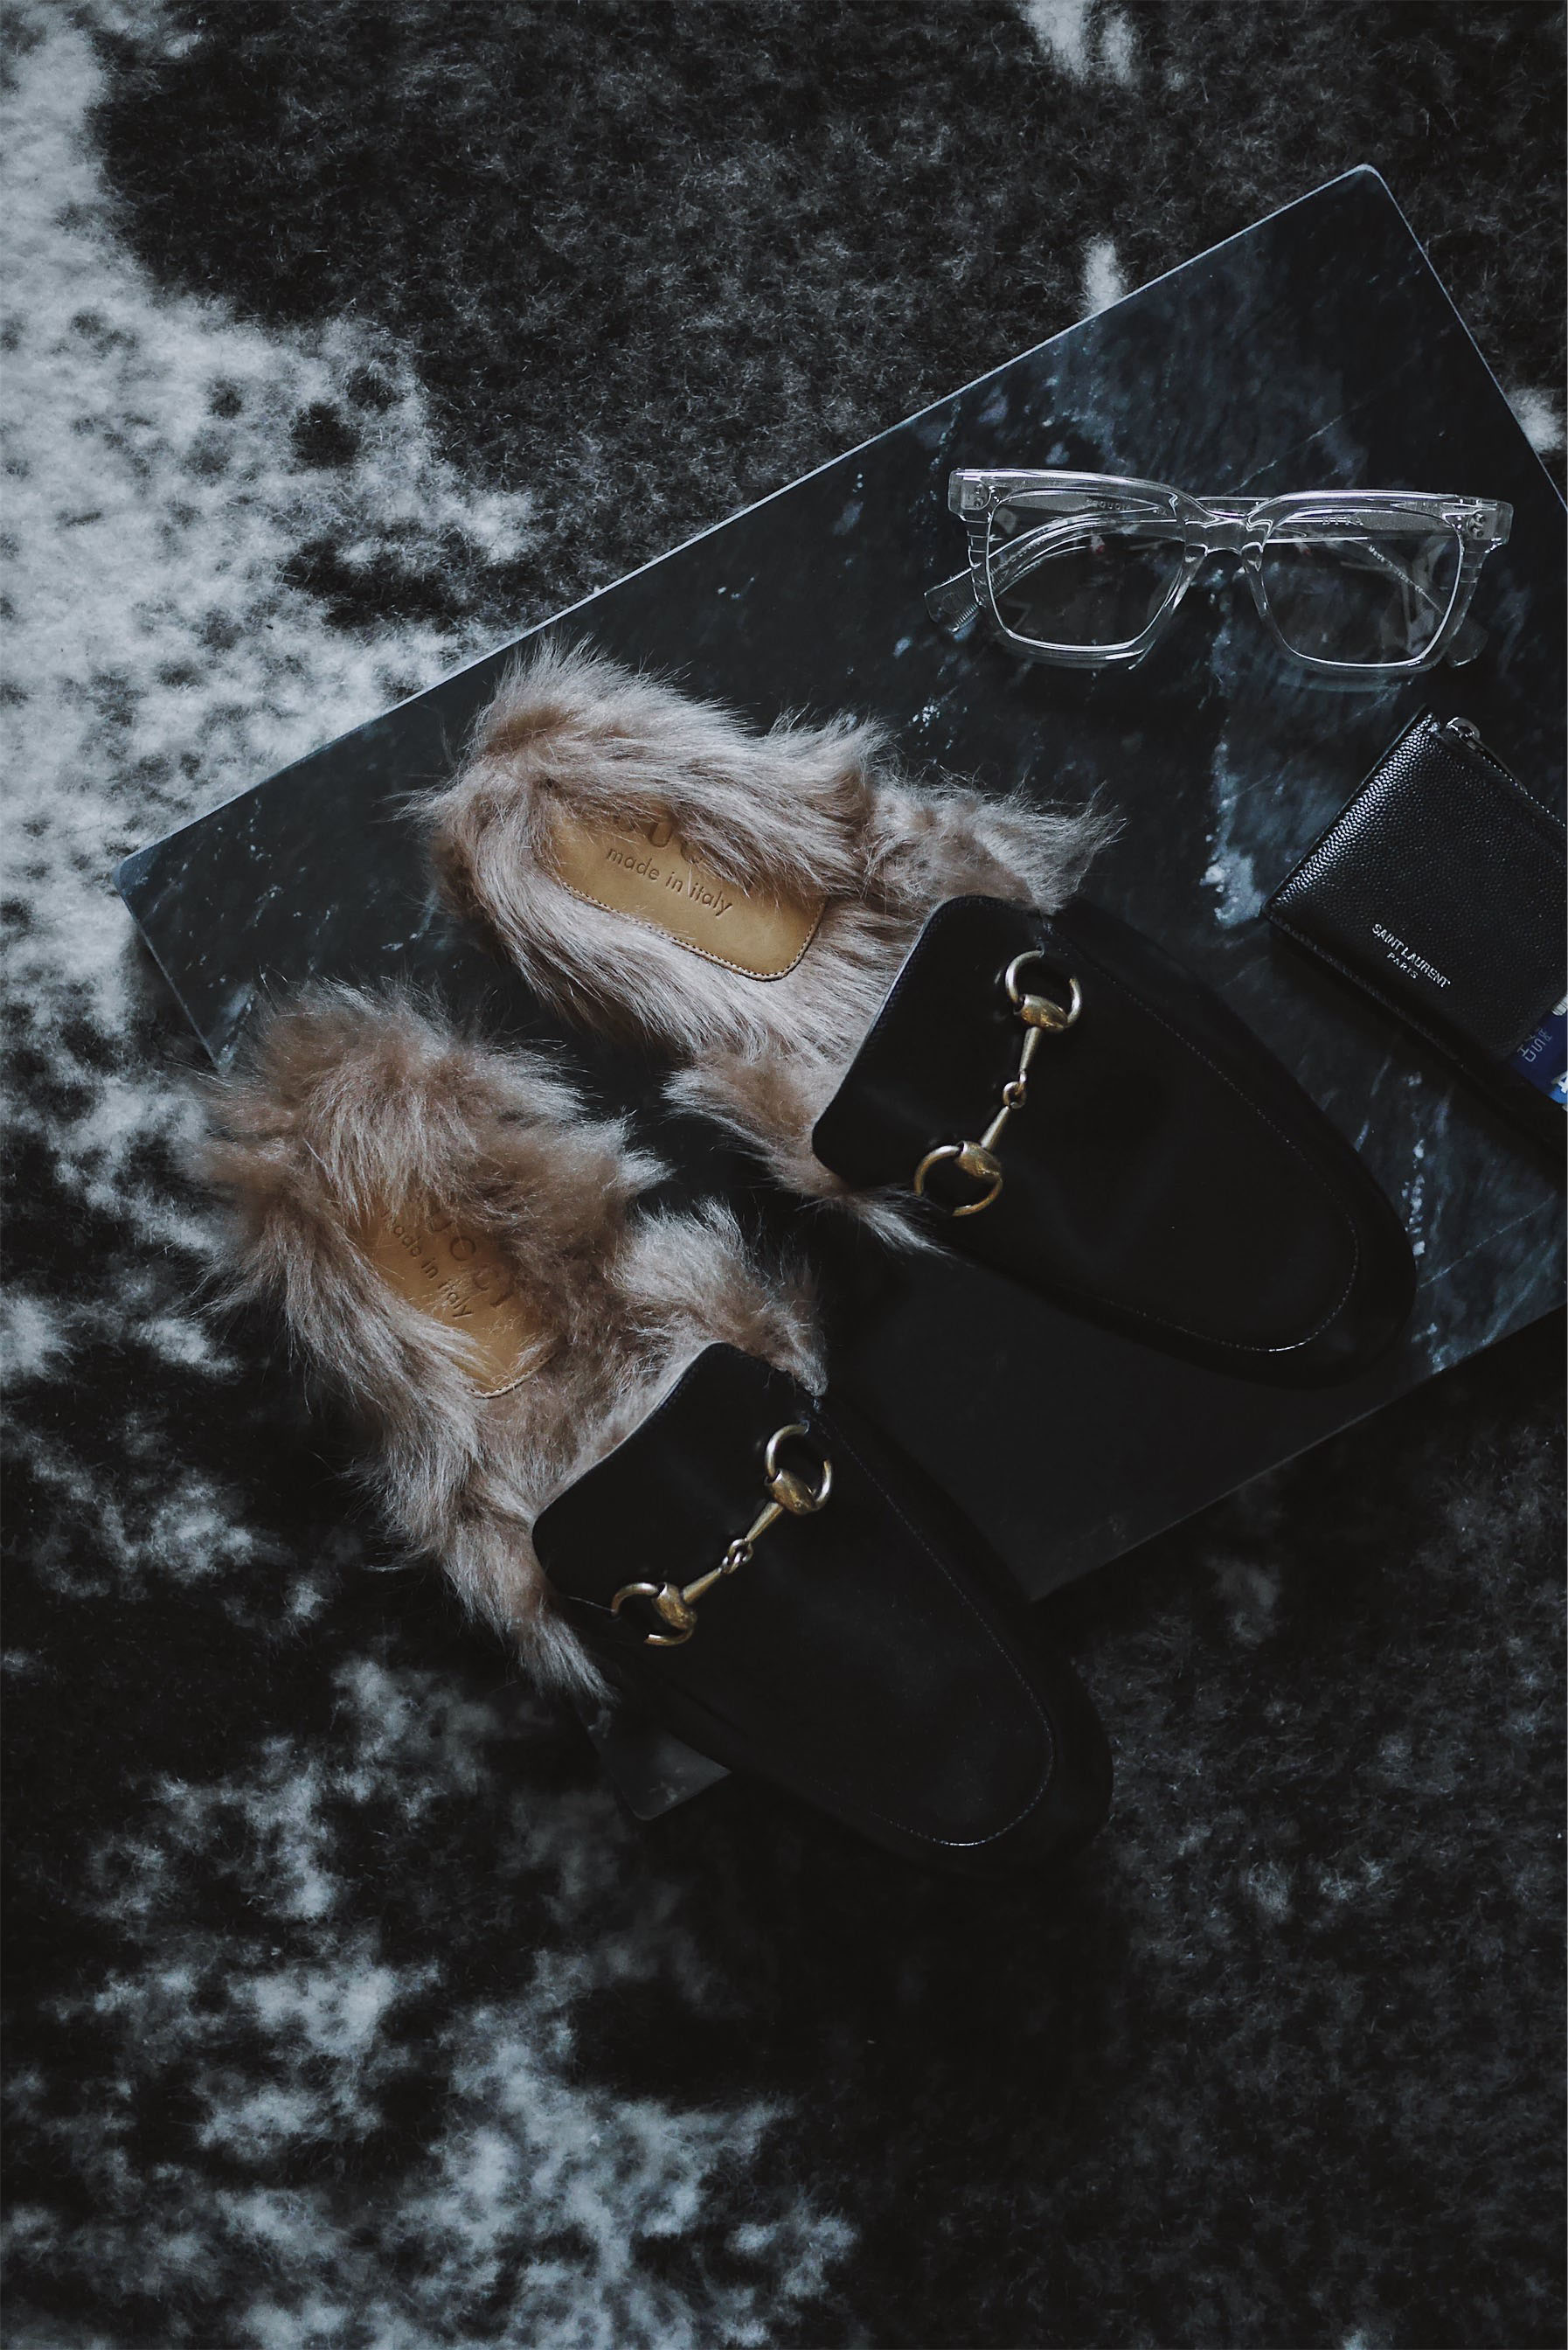 Fur-ocious loafers for your voracious appetite  - Put your best foot forward with two of my favorite fur loafers from Gucci + Prada.